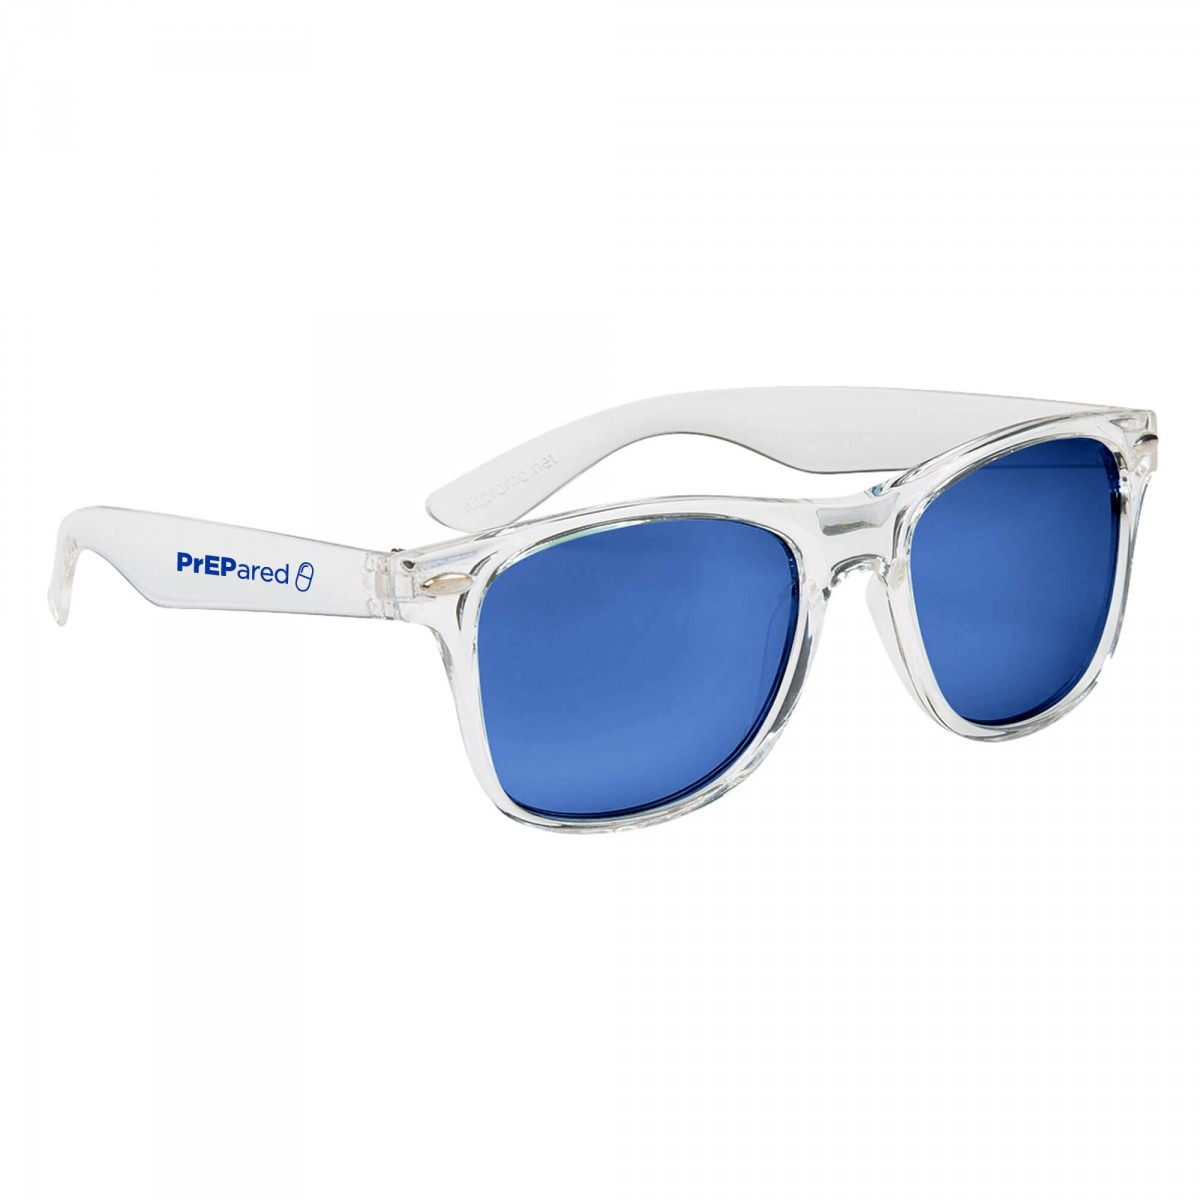 PrEP Mirrored Sunglasses